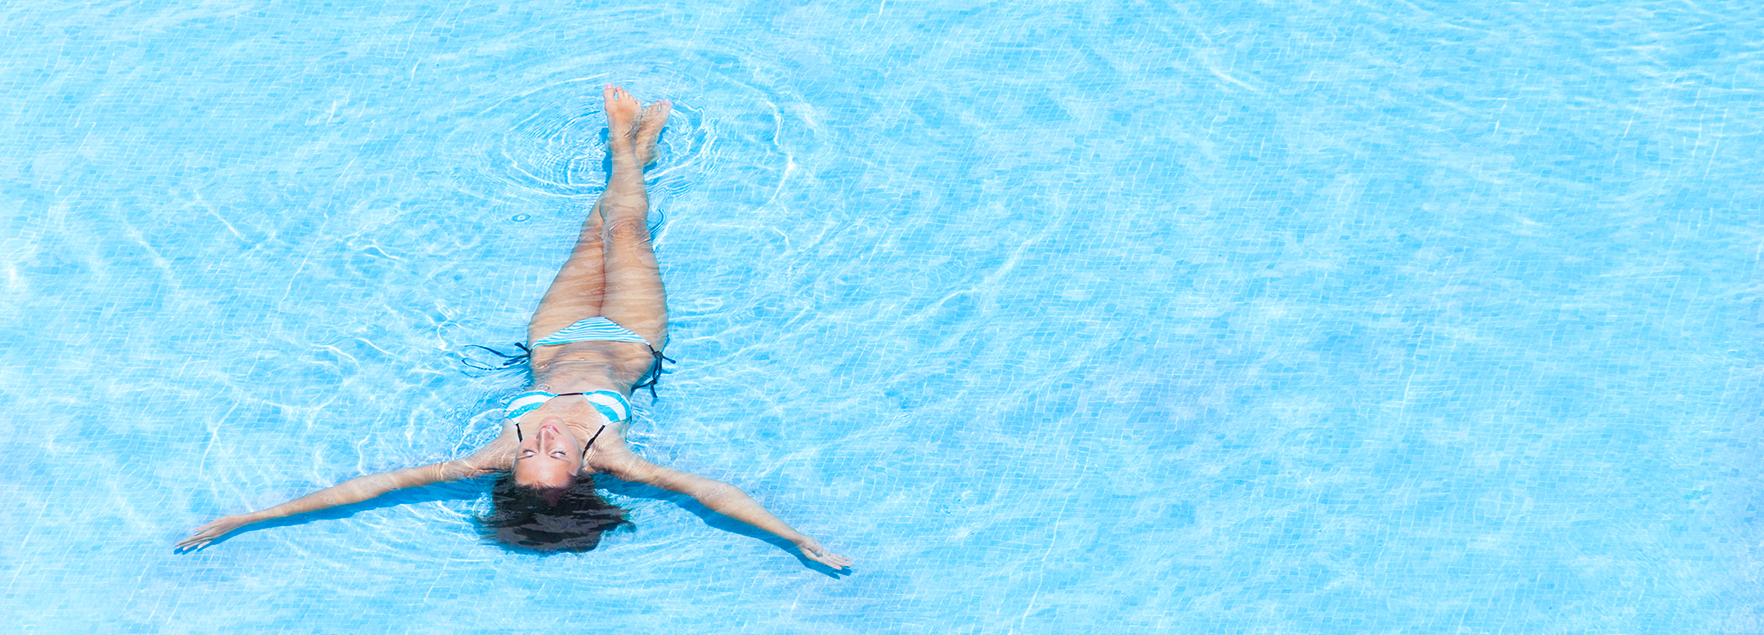 Young woman swimming in the crystal-clear pool